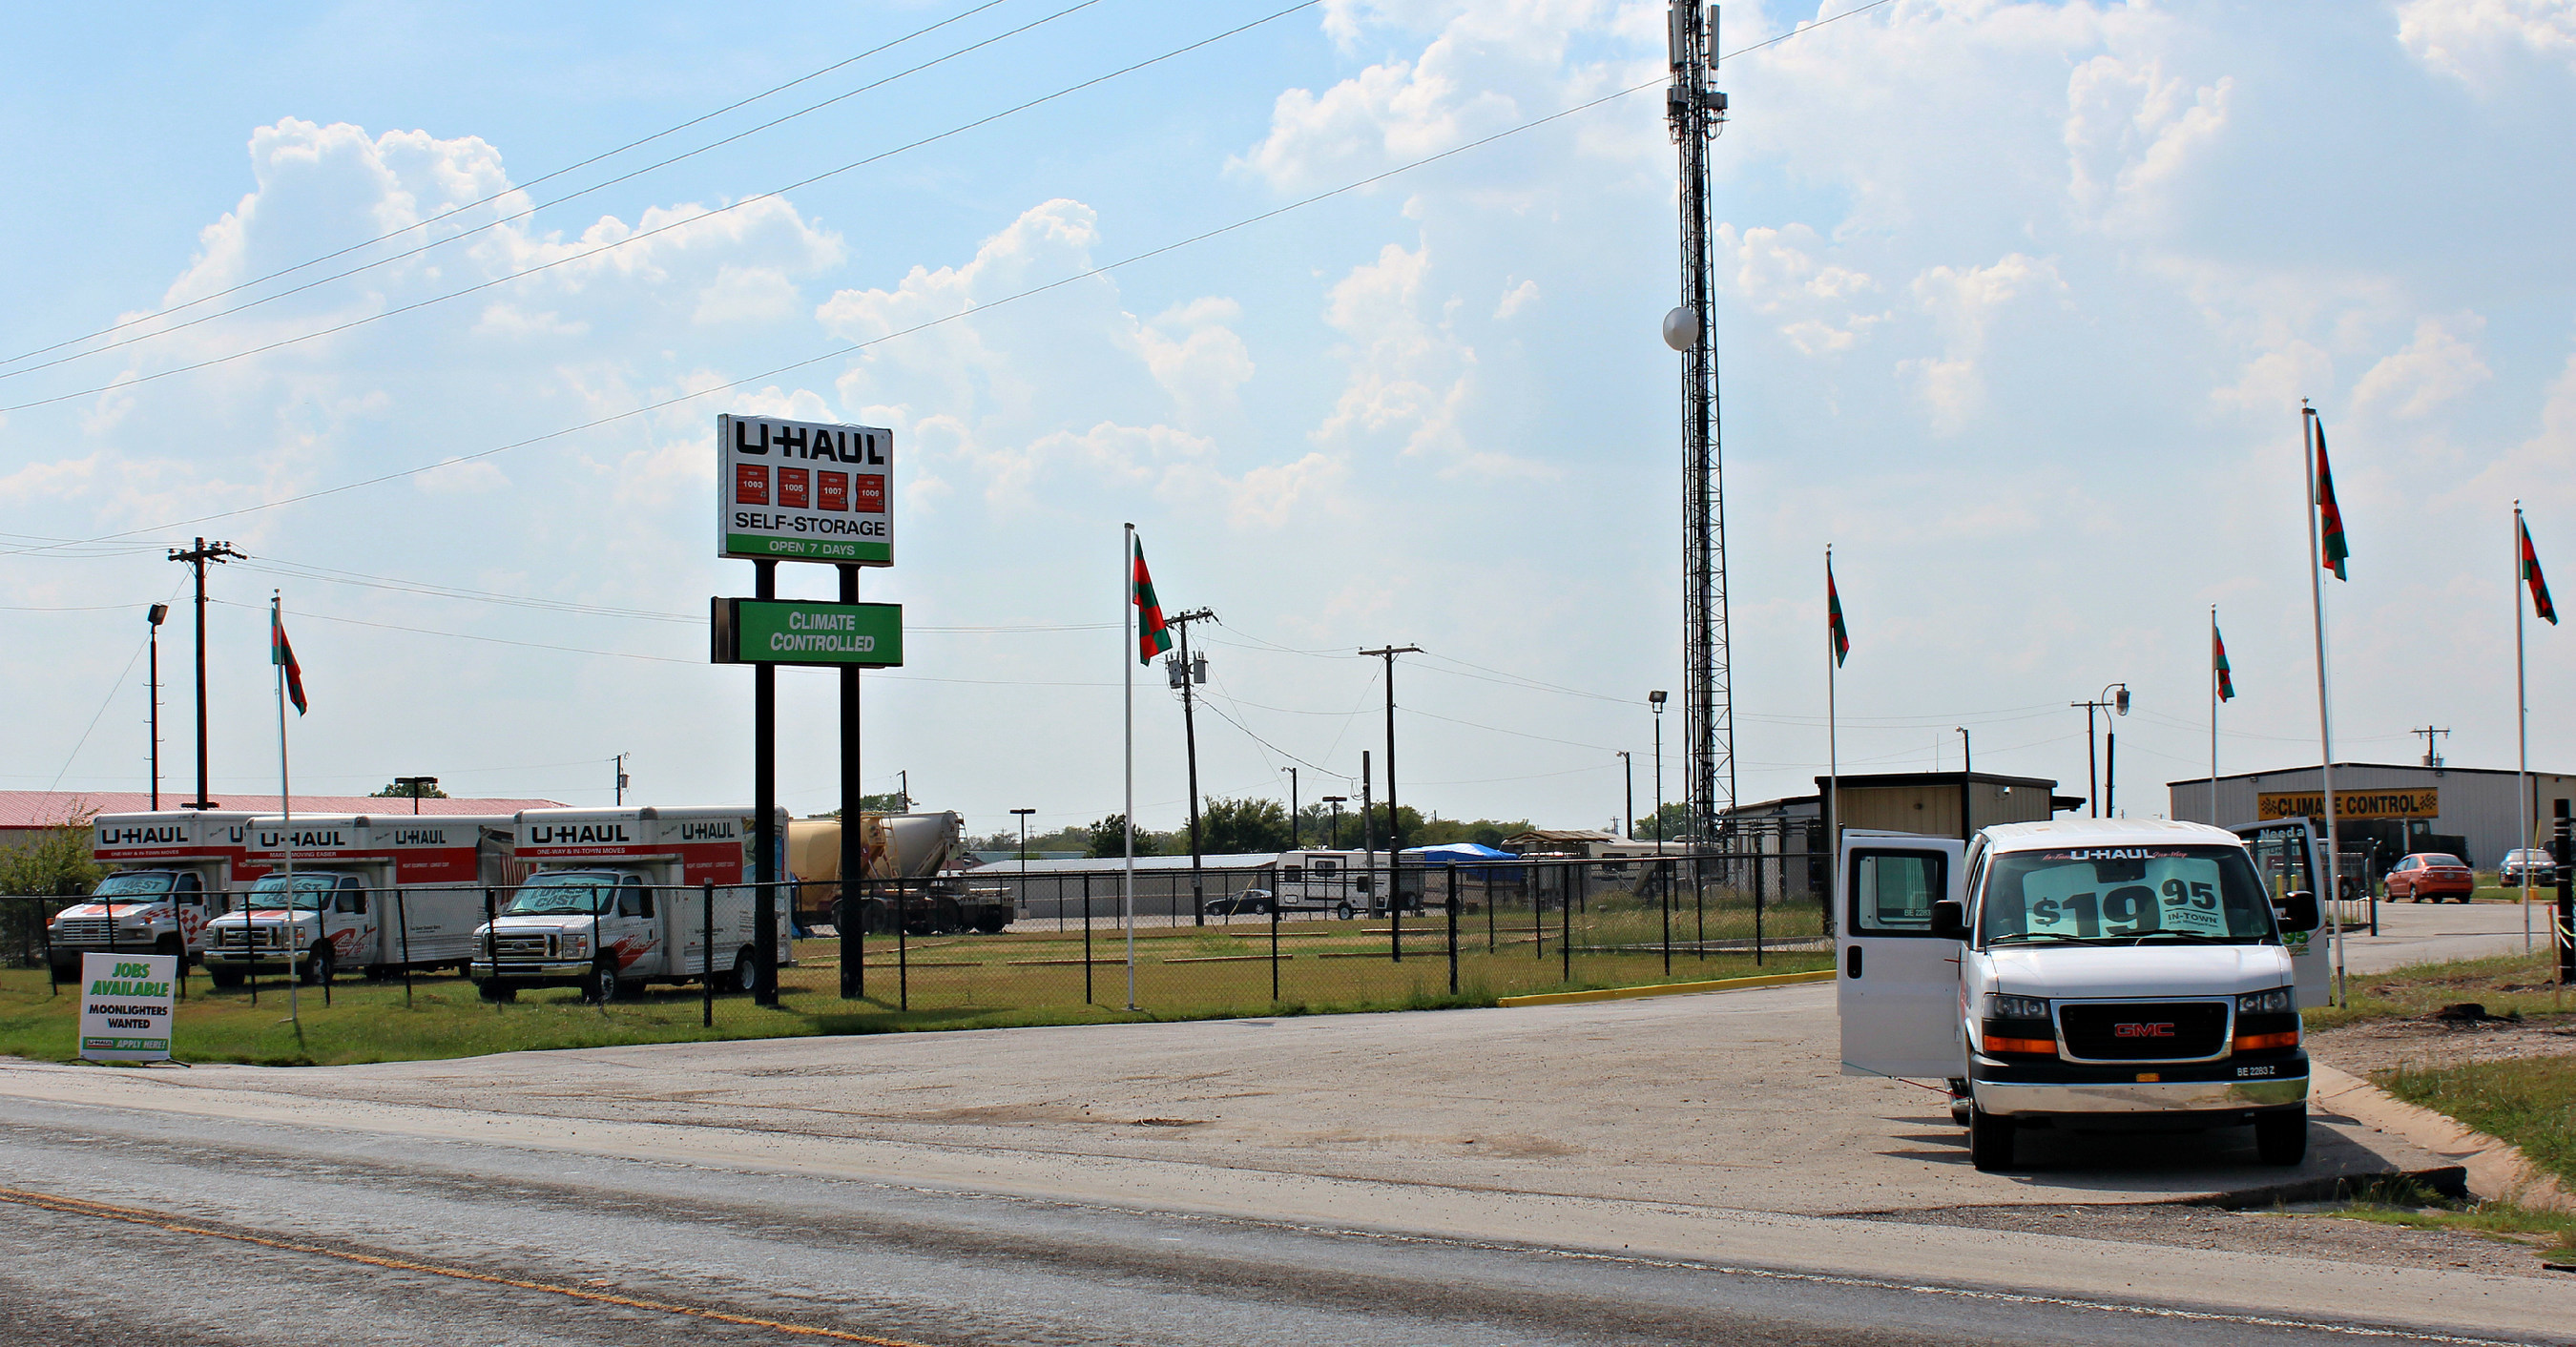 U-Haul Company of Texas is pleased to meet the needs of Denton County with the opening of its store, U-Haul Moving & Storage of Justin, at 16300 FM 156 S. The location is just one mile northwest of Texas Motor Speedway.